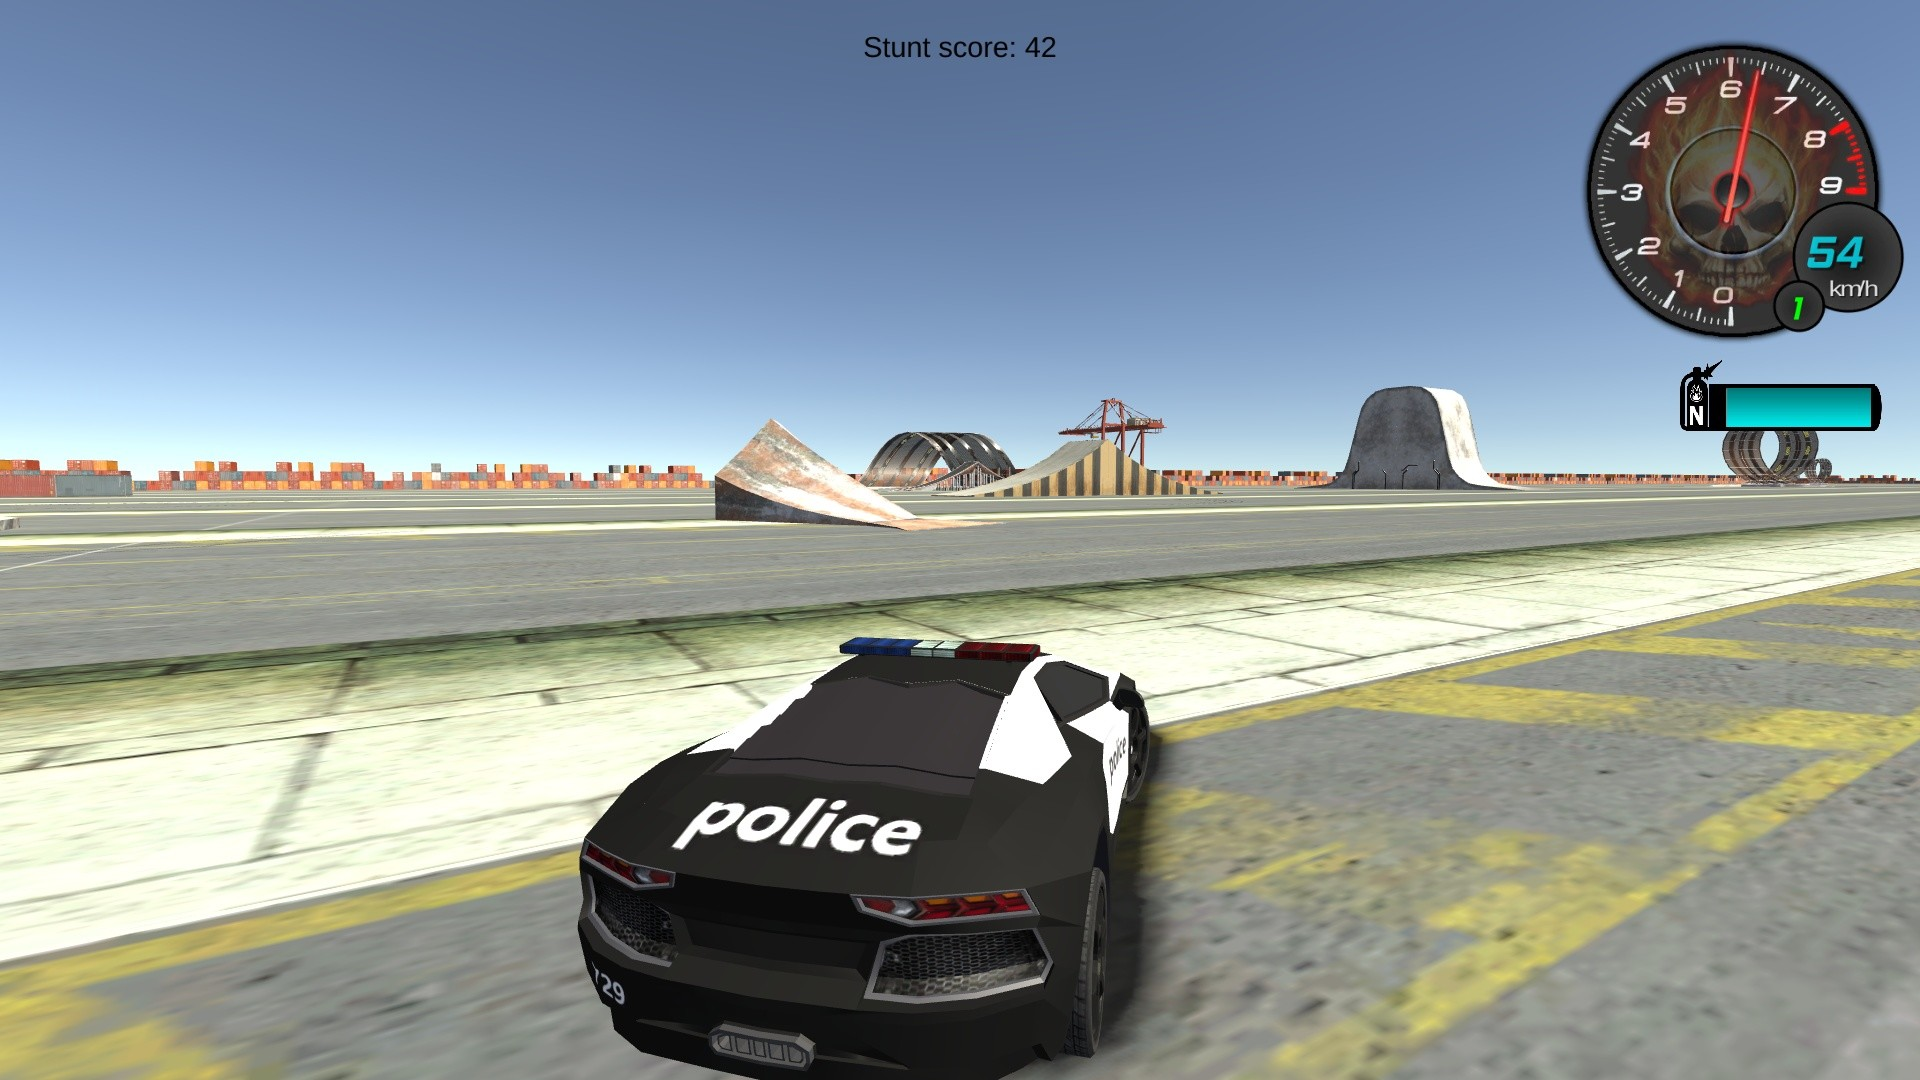 Police Stunt Cars screenshot